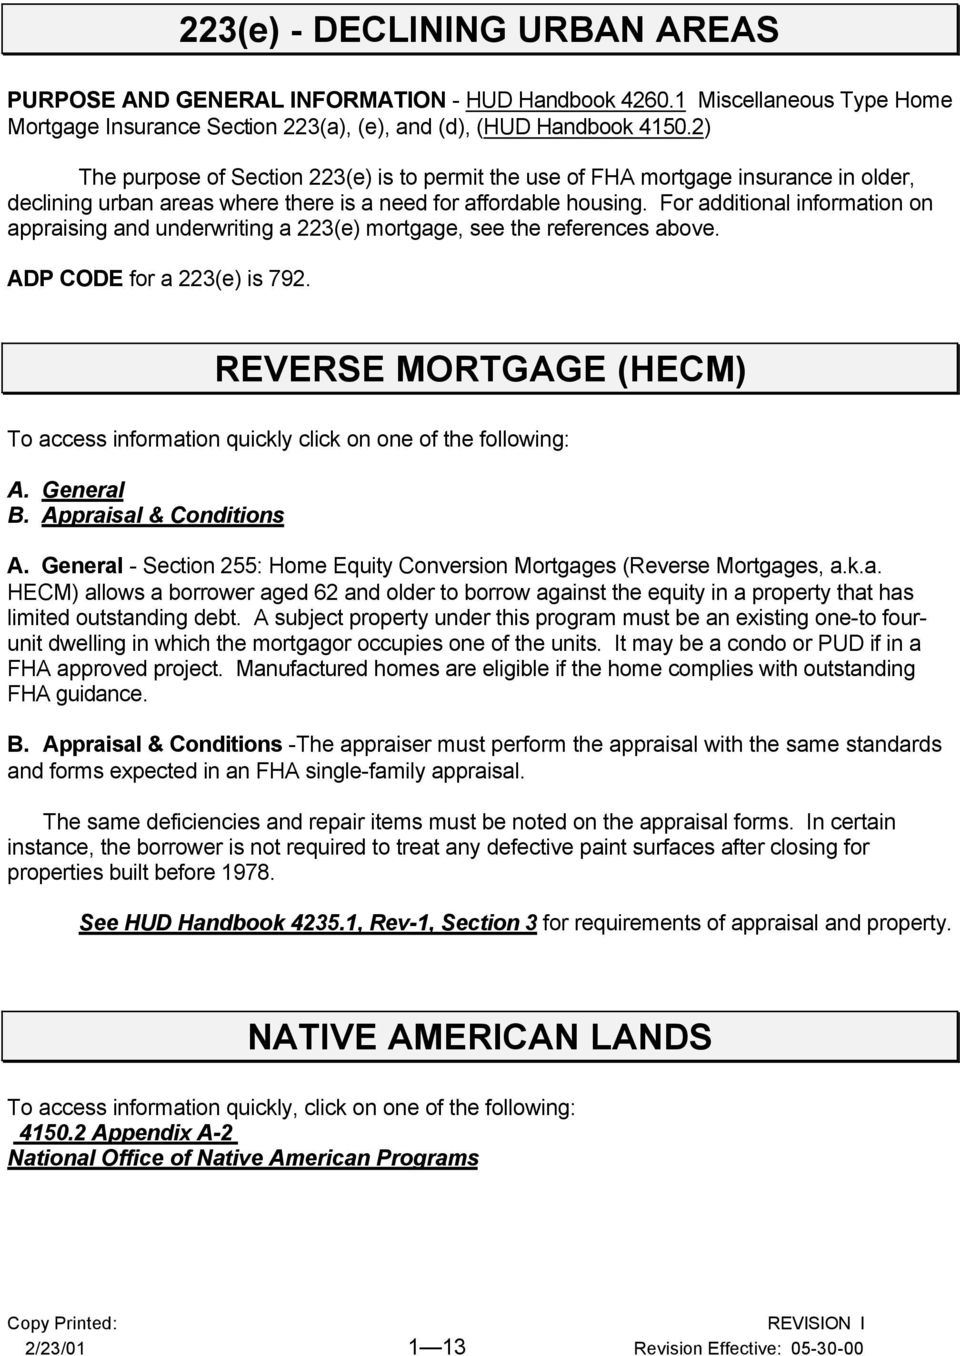 For additional information on appraising and underwriting a 223(e) mortgage, see the references above. ADP CODE for a 223(e) is 792.